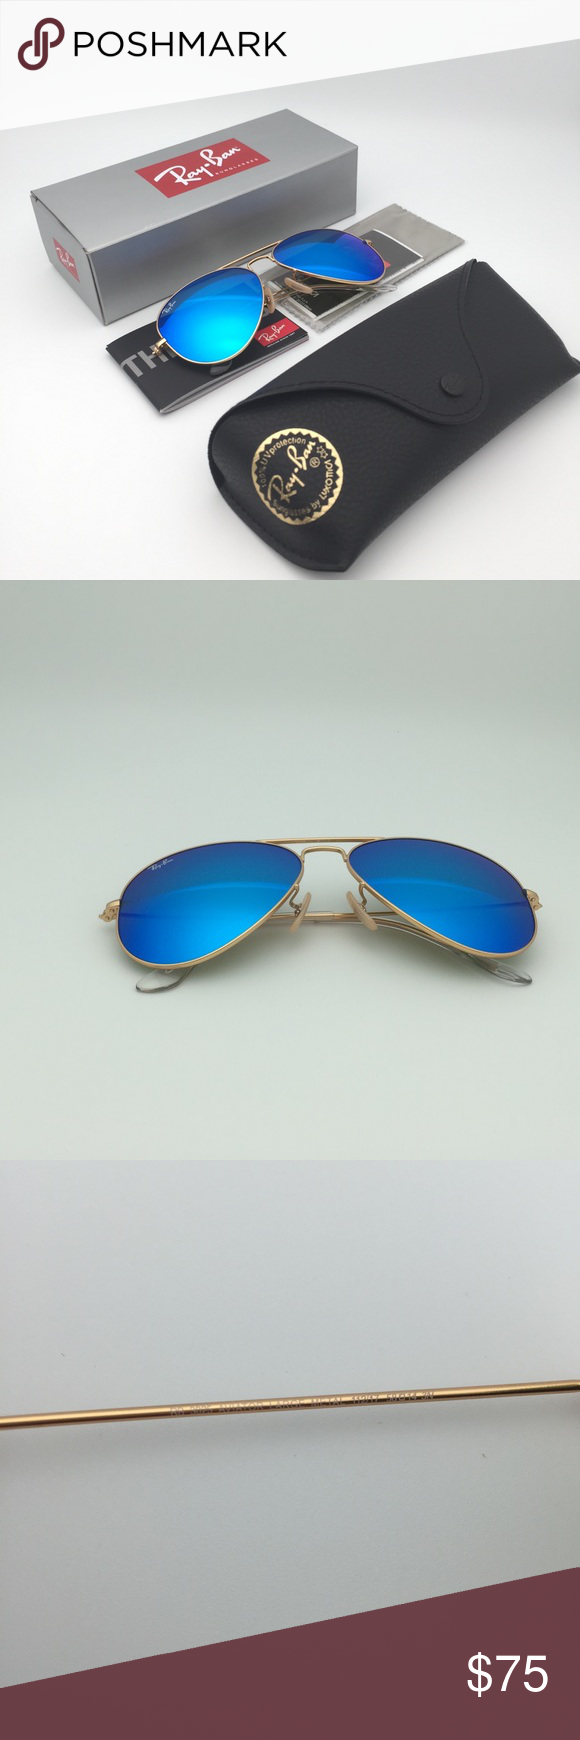 c5b2e19dd07d2 3025 112 17 Blue Mirror Sunglasses Ray-Ban Aviator Model  RB3025 112 17  58-14 Made in Italy Firm on price By USPS paper box